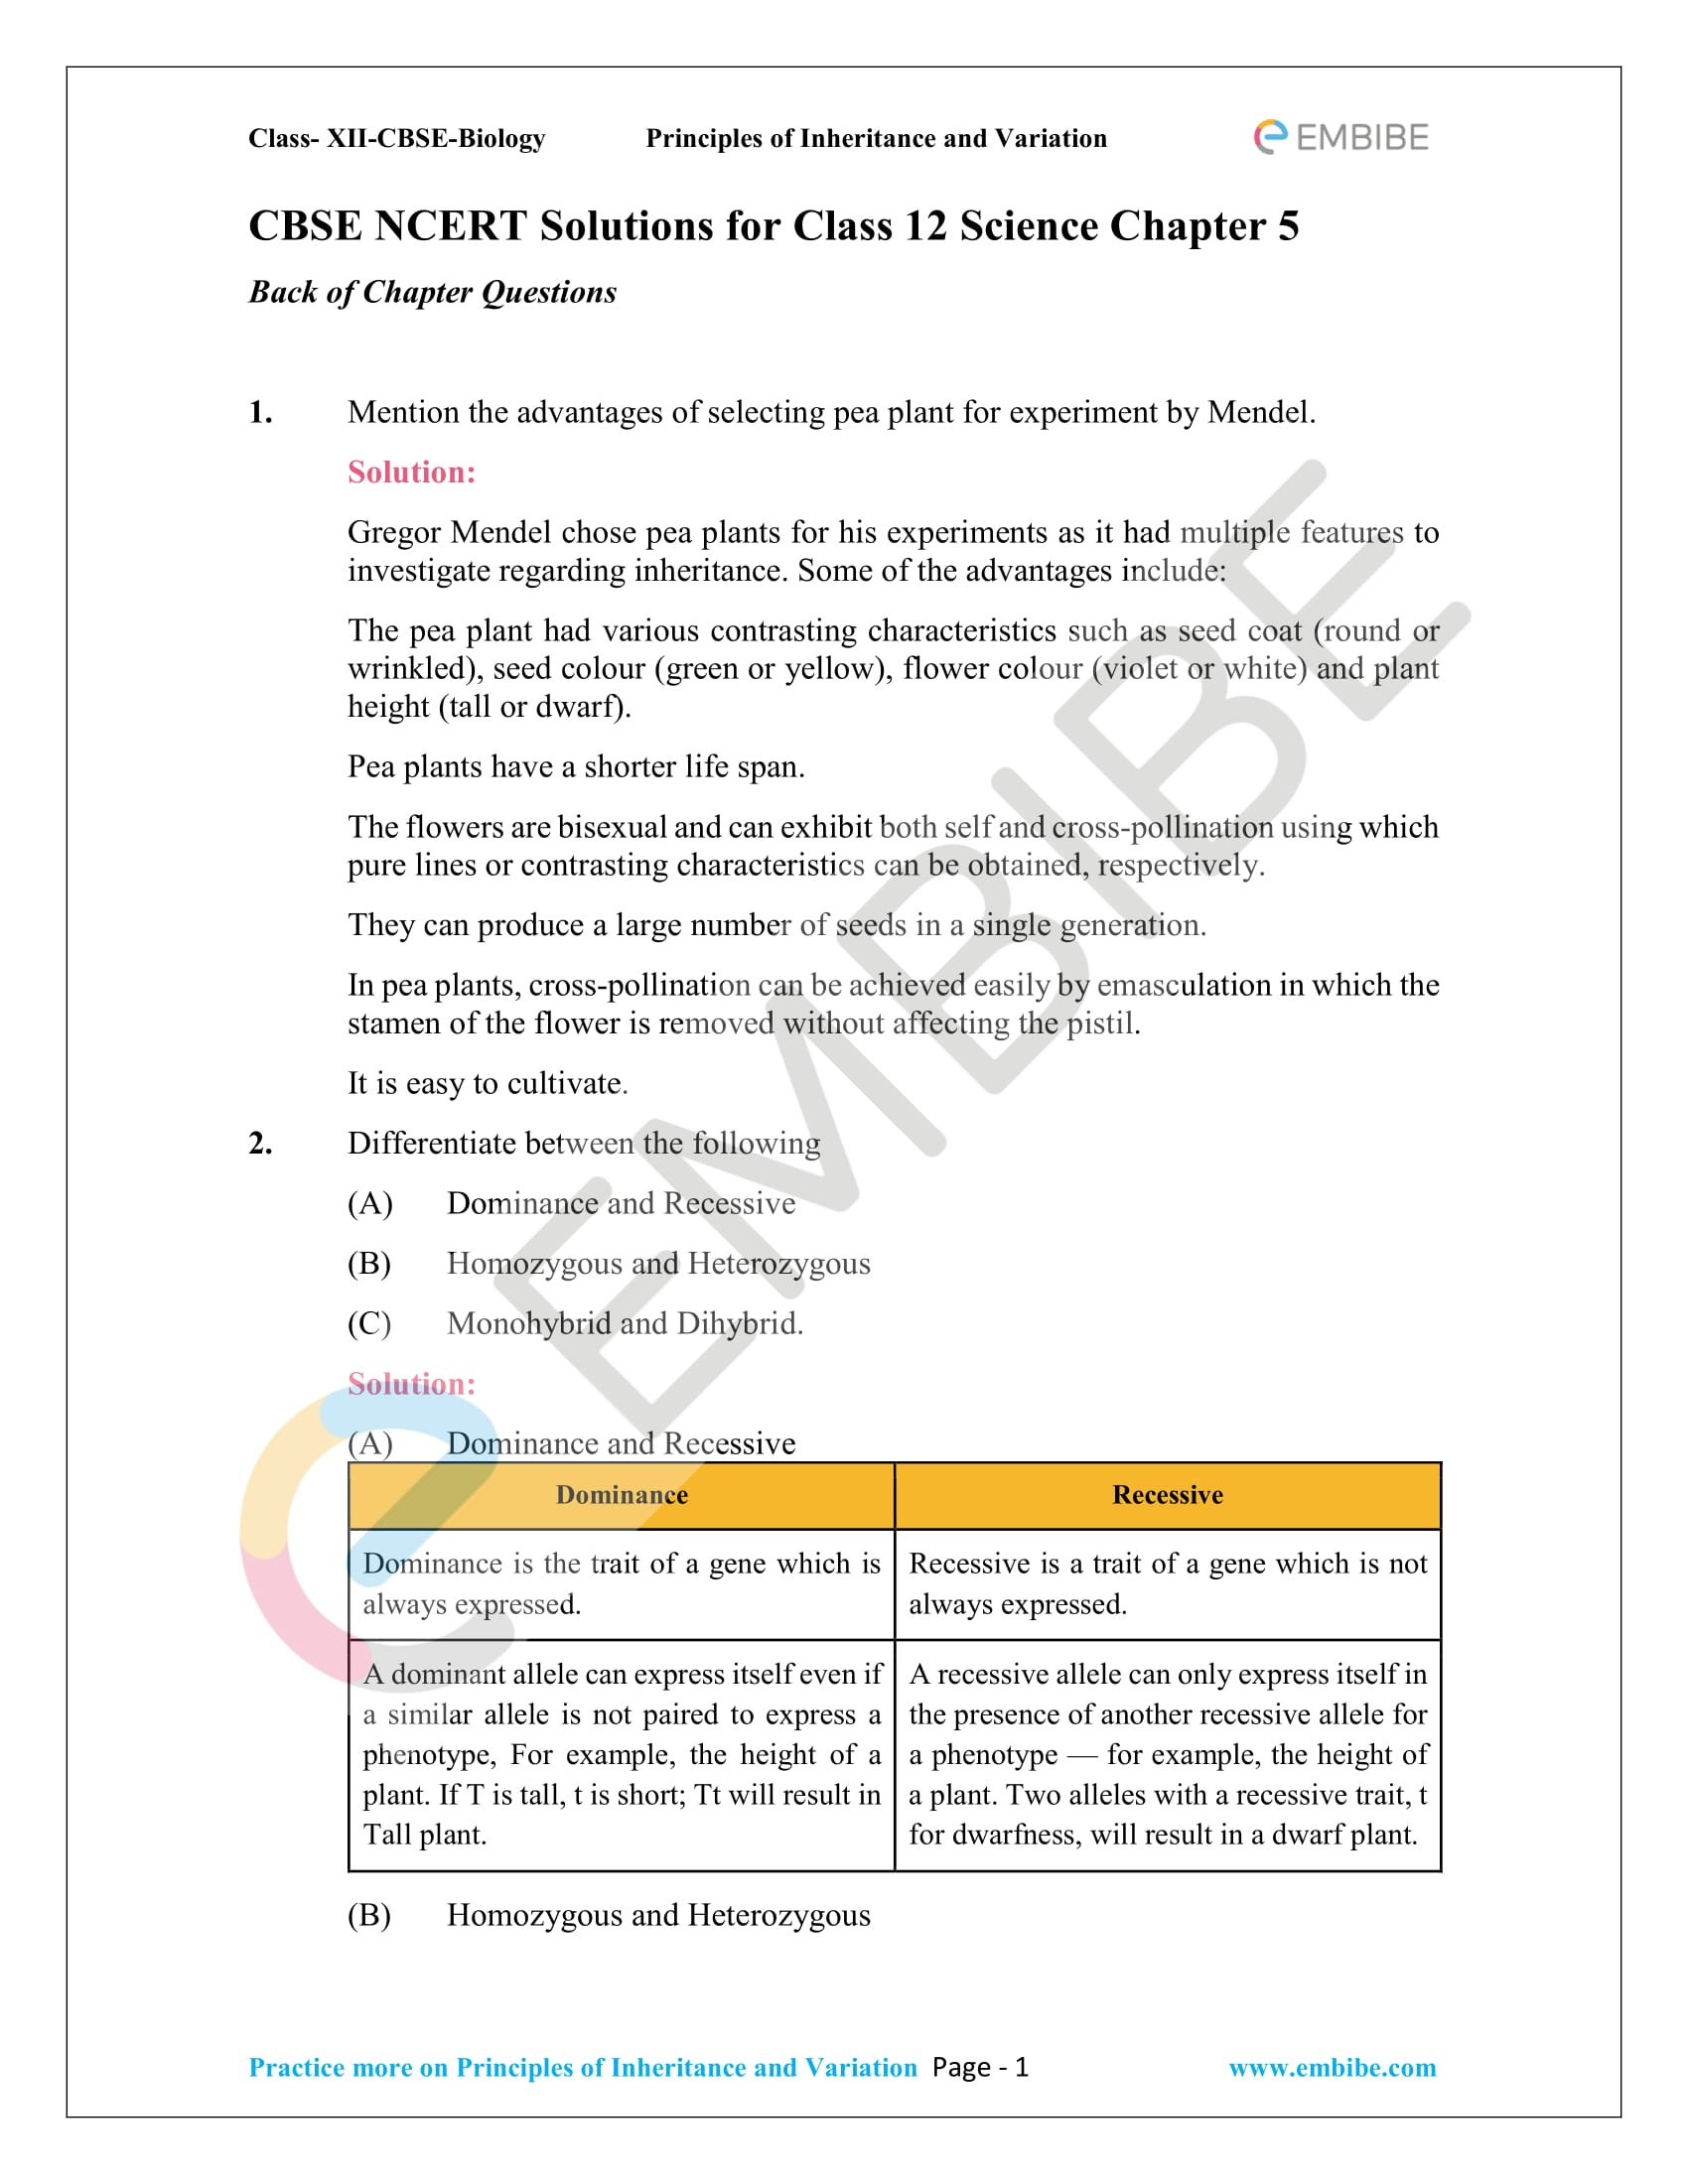 NCERT Solutions for Class 12 Biology Chapter 5: Principles Of Inheritance And Variation -1